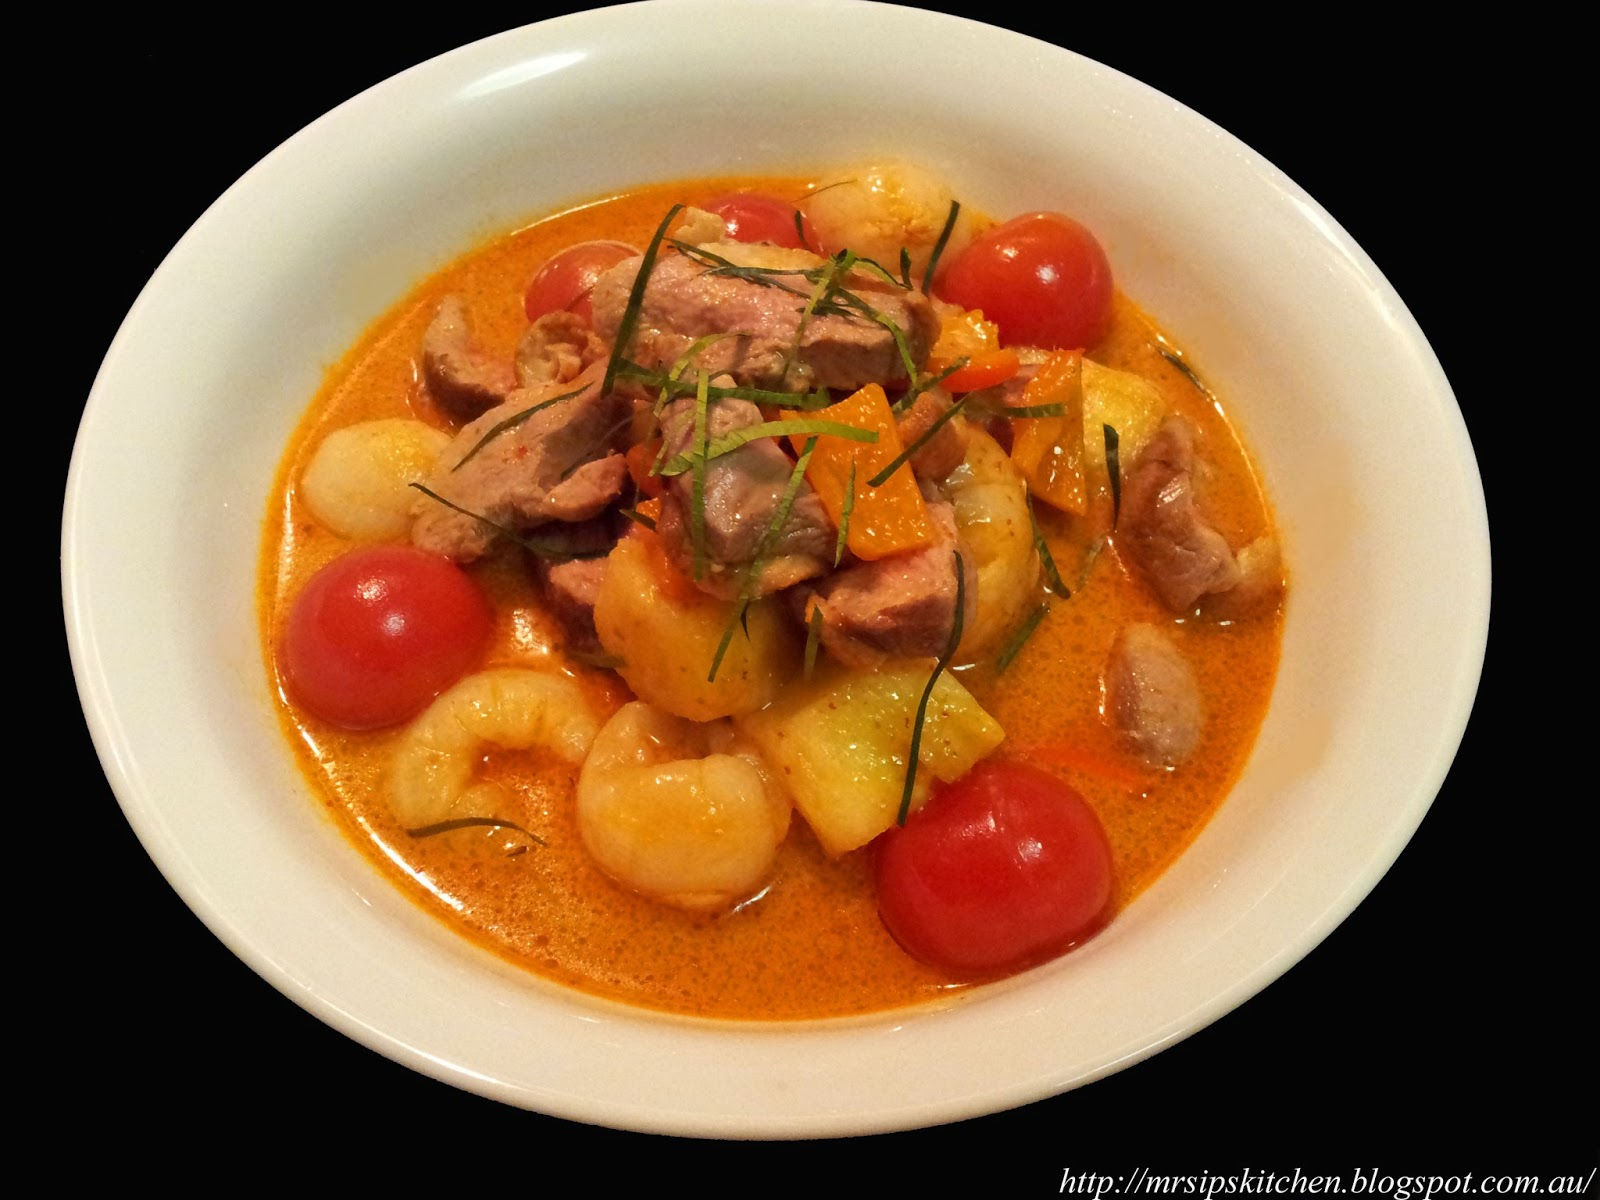 Mrs. Ip's Kitchen: Thai Red Duck Curry with Pineapple & Lychees